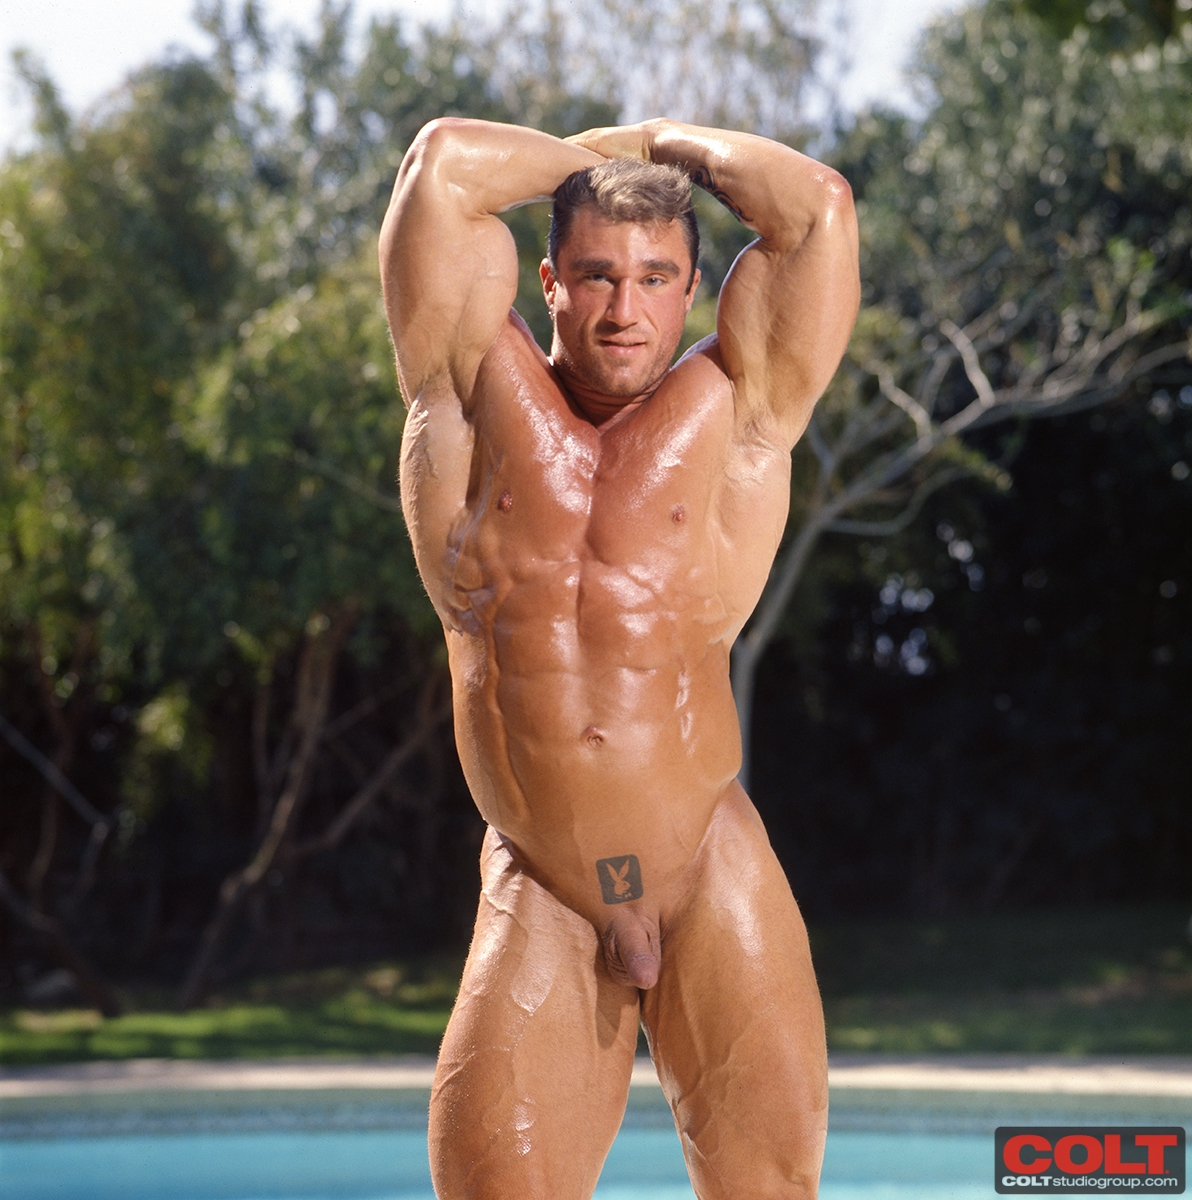 Rod mature male galleries